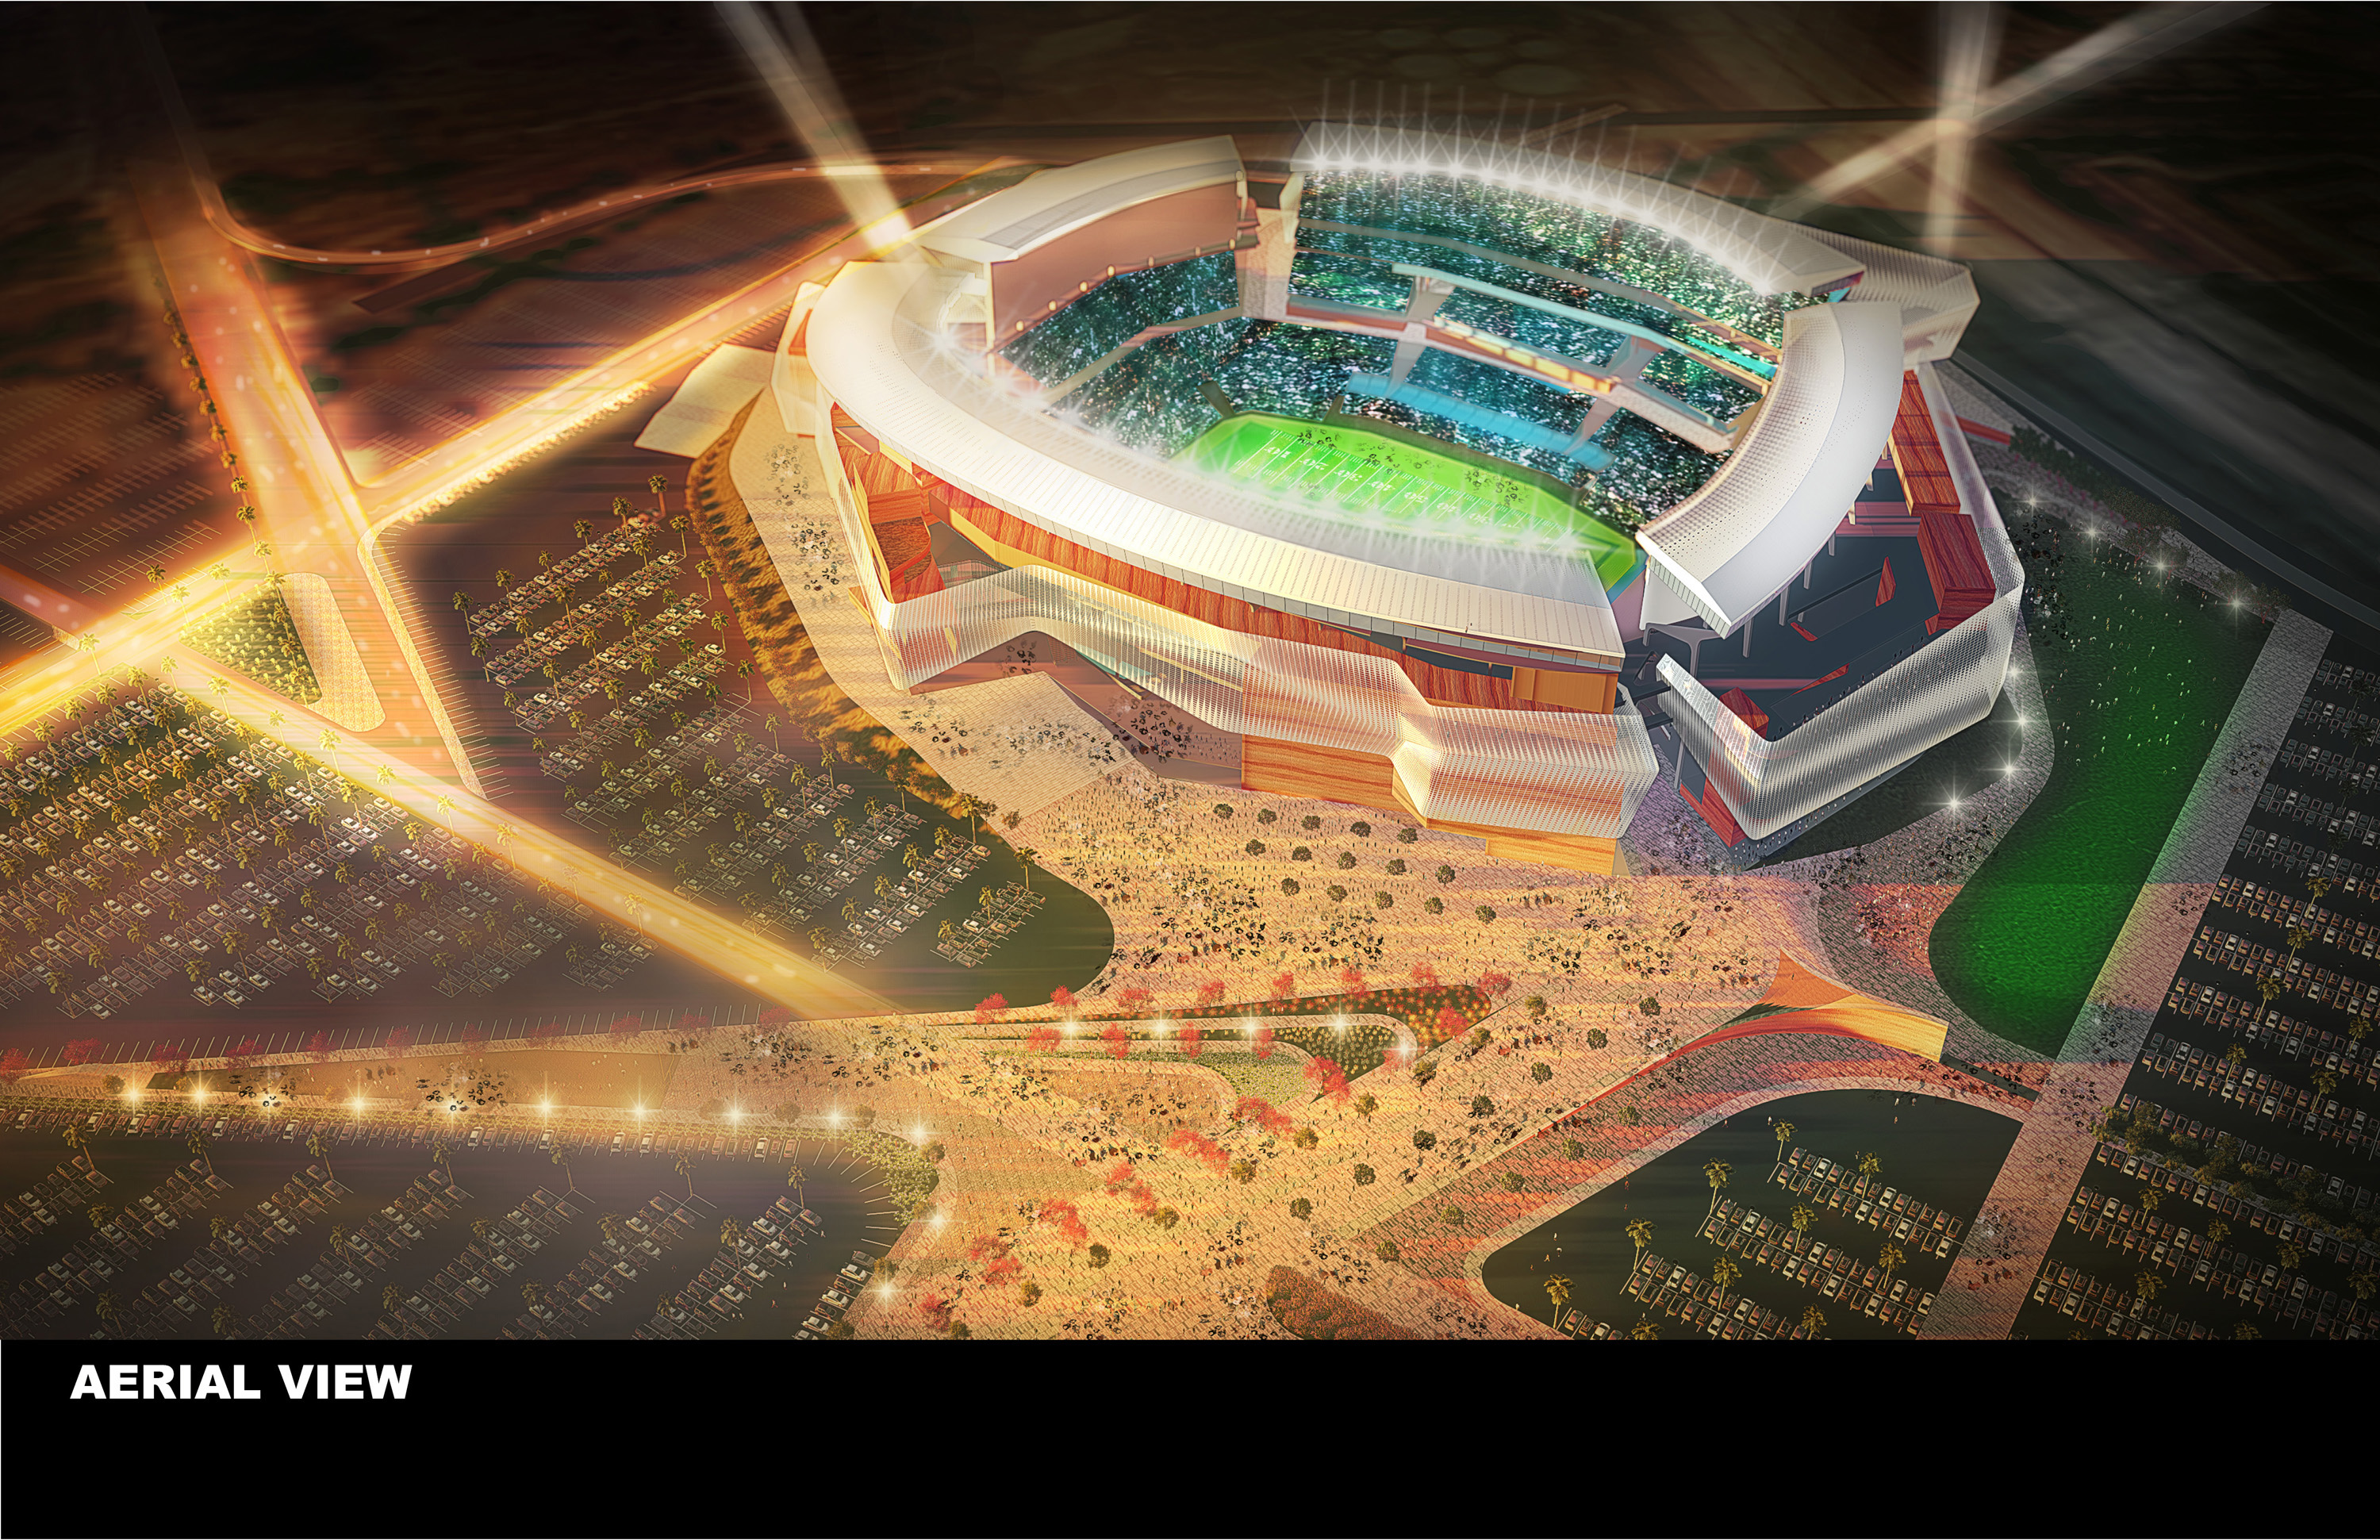 This undated artist rendering provided by the City and County of San Diego and unveiled in San Diego Monday, Aug. 10, 2015, shows a view of a new $1.1 billion stadium proposed for the San Diego Chargers NFL football team. The city and county's updated pla